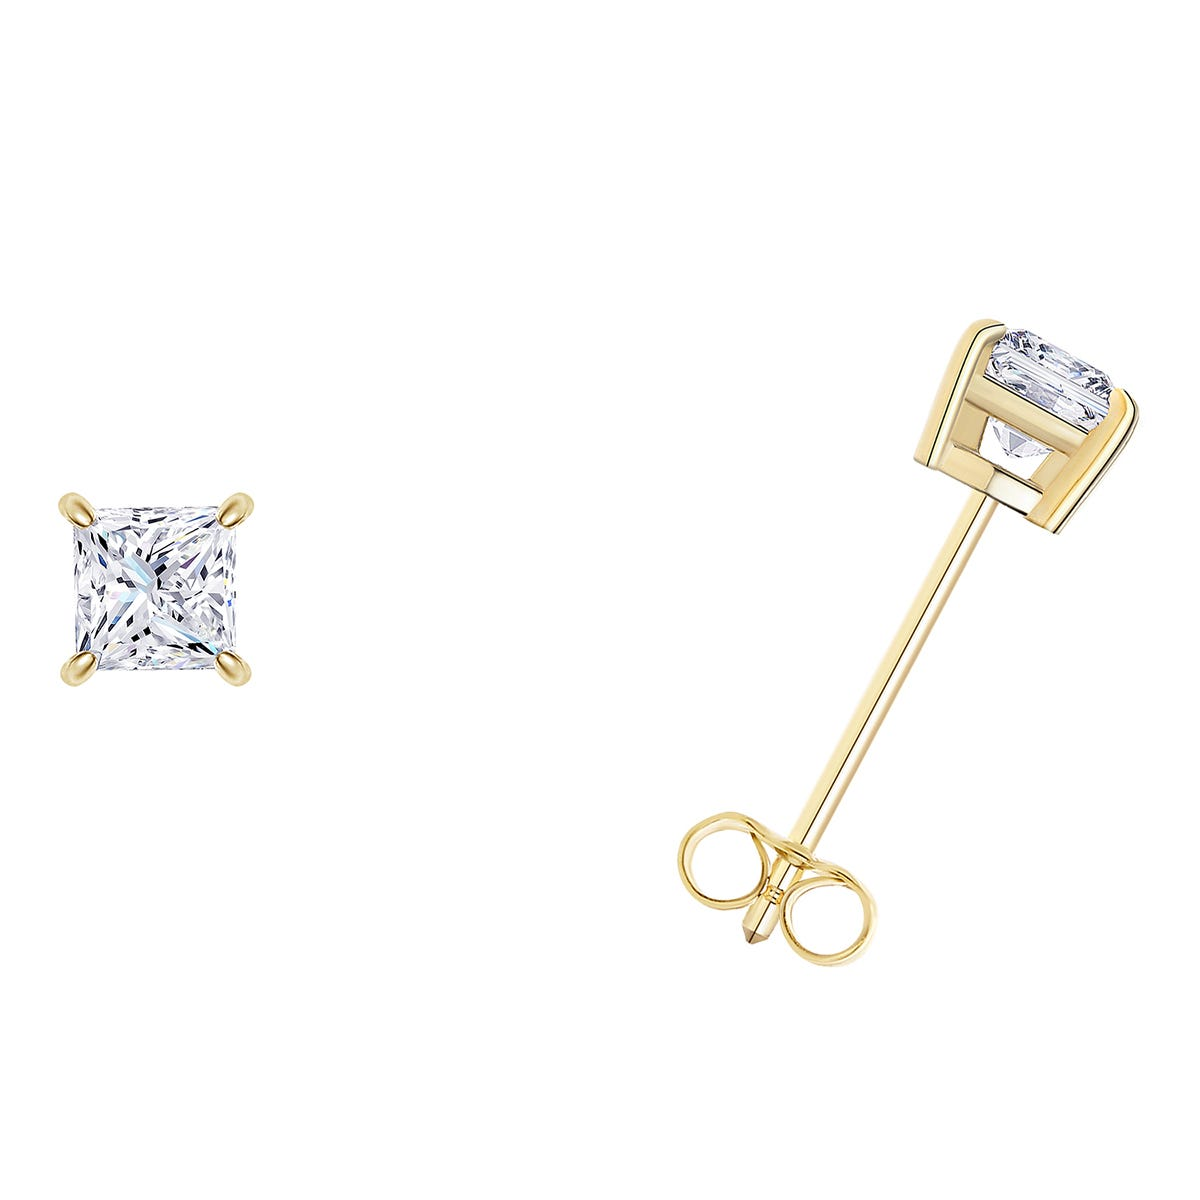 1/10 CTTW Princess Cut Diamond Solitaire Stud Earrings in 14K Yellow Gold 4-Prong (I-I2) IGI Certified